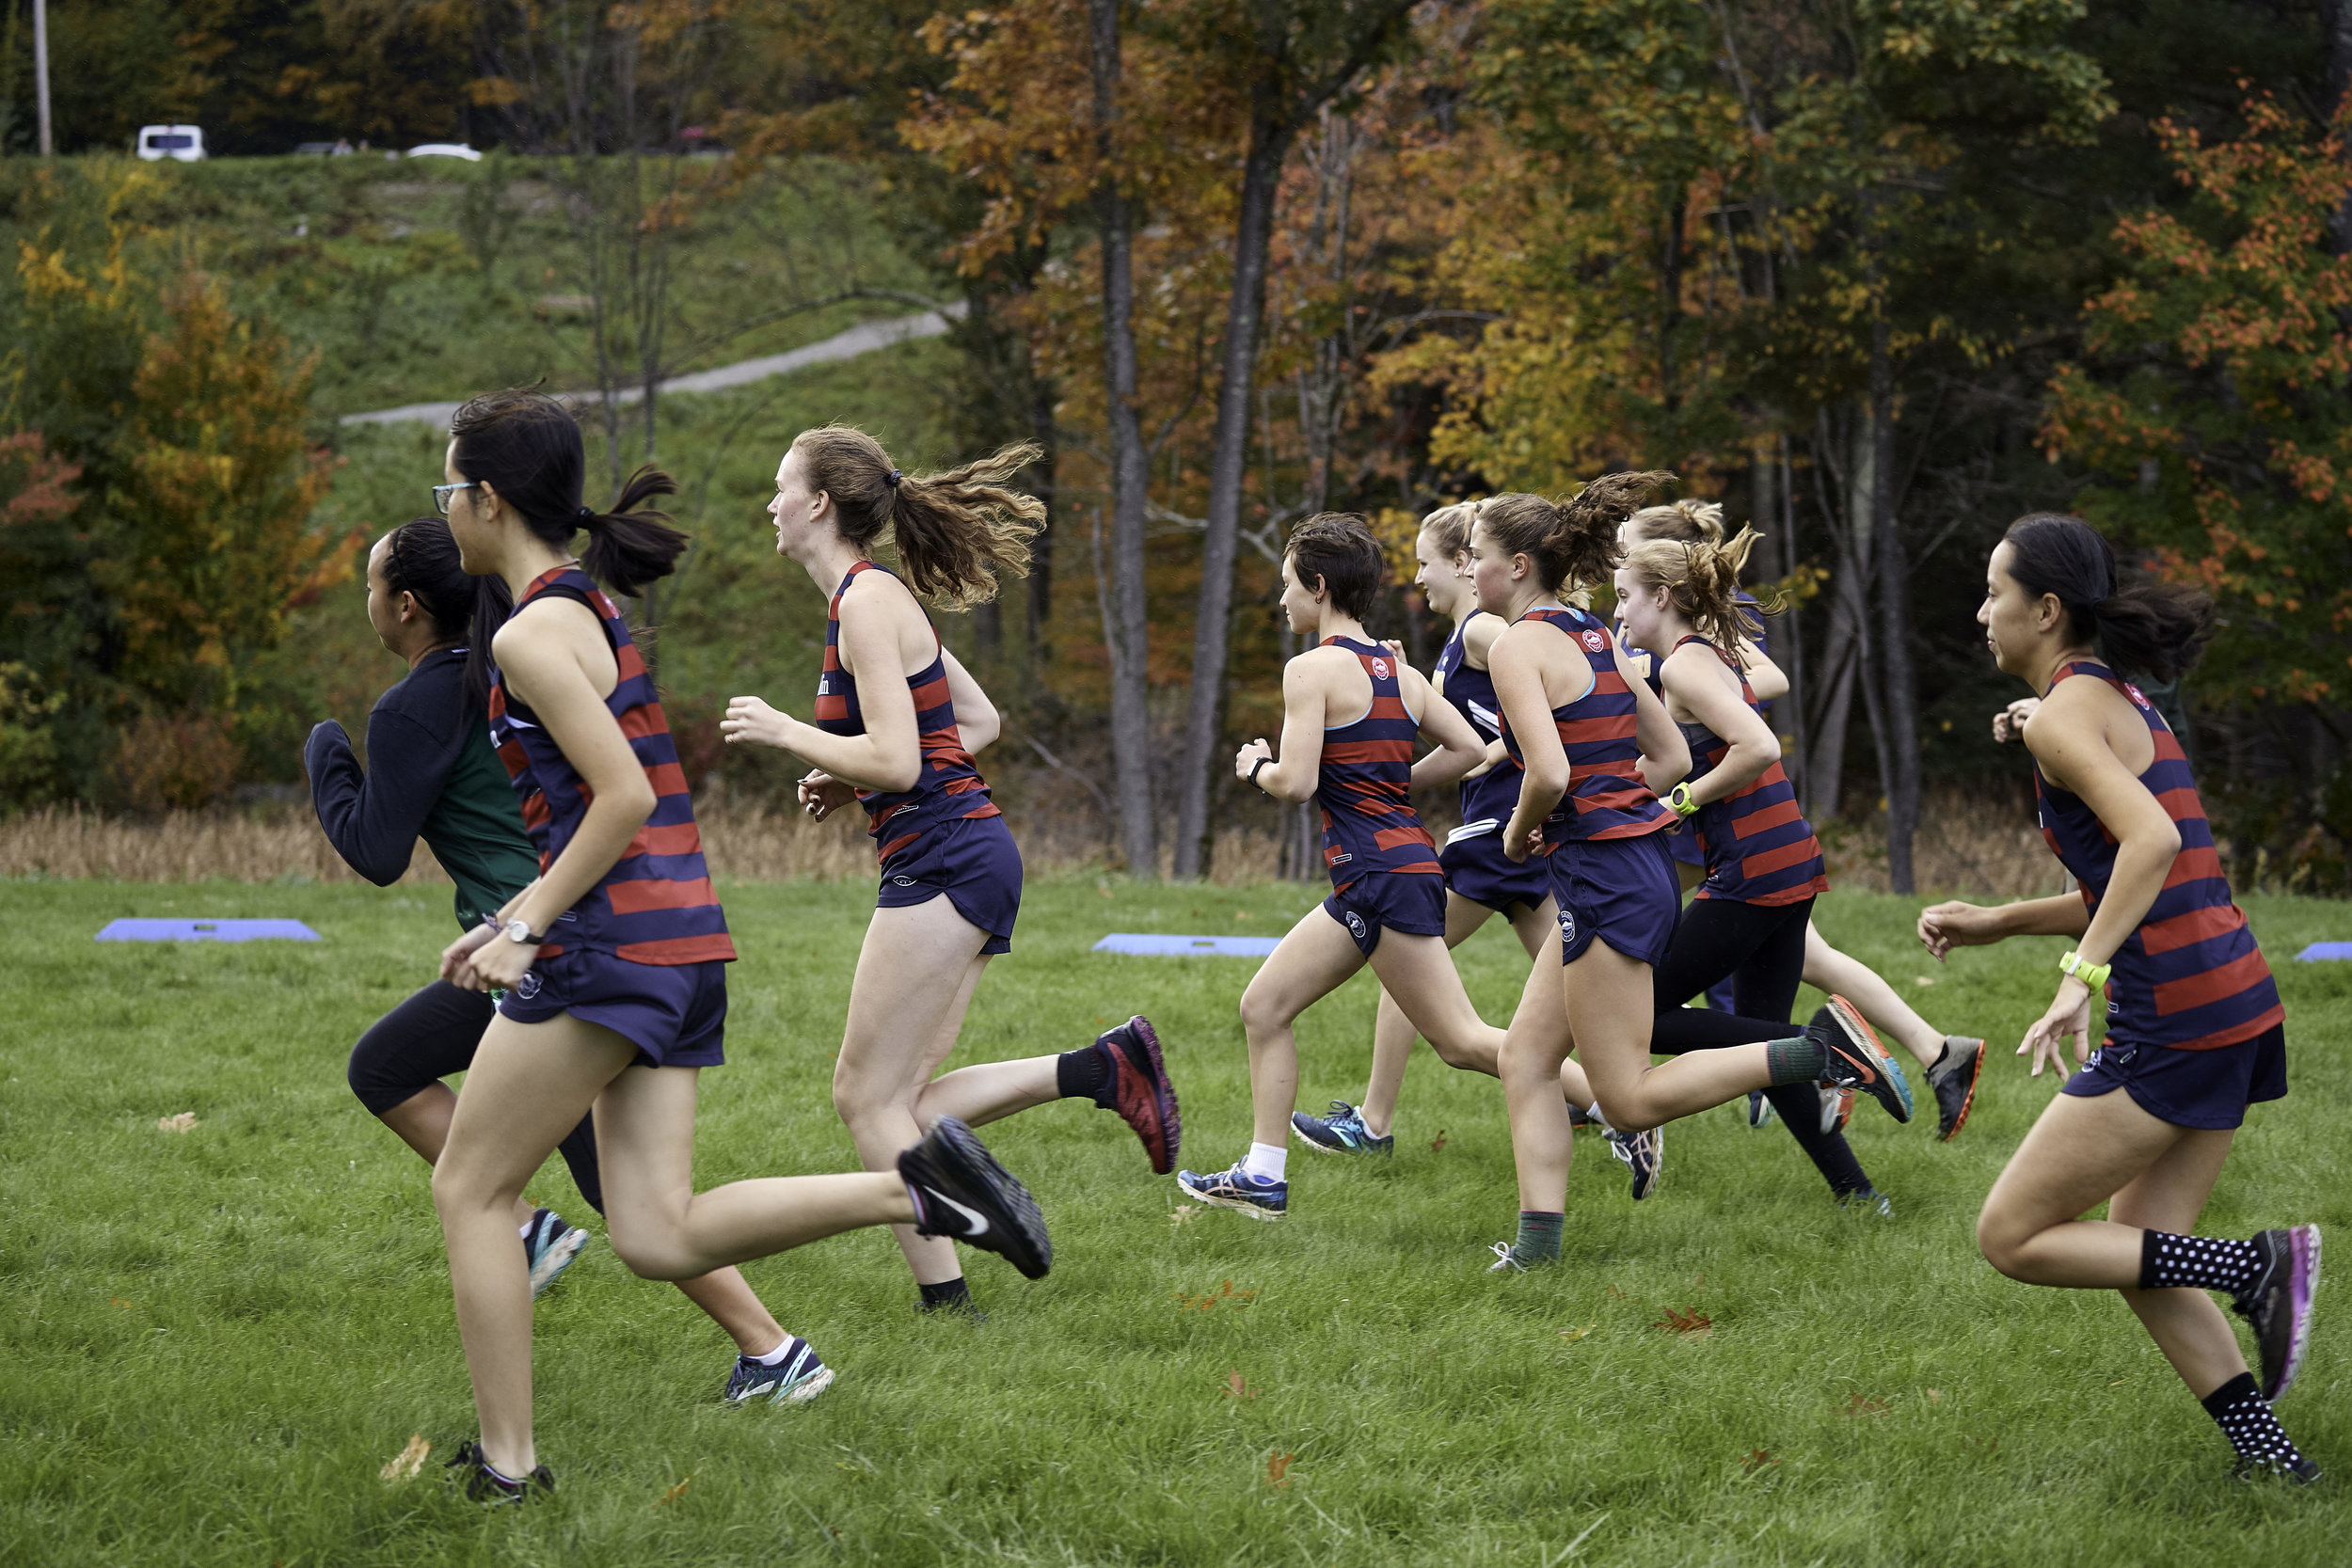 Dublion Invitational - October 12, 2018 - 136503.jpg